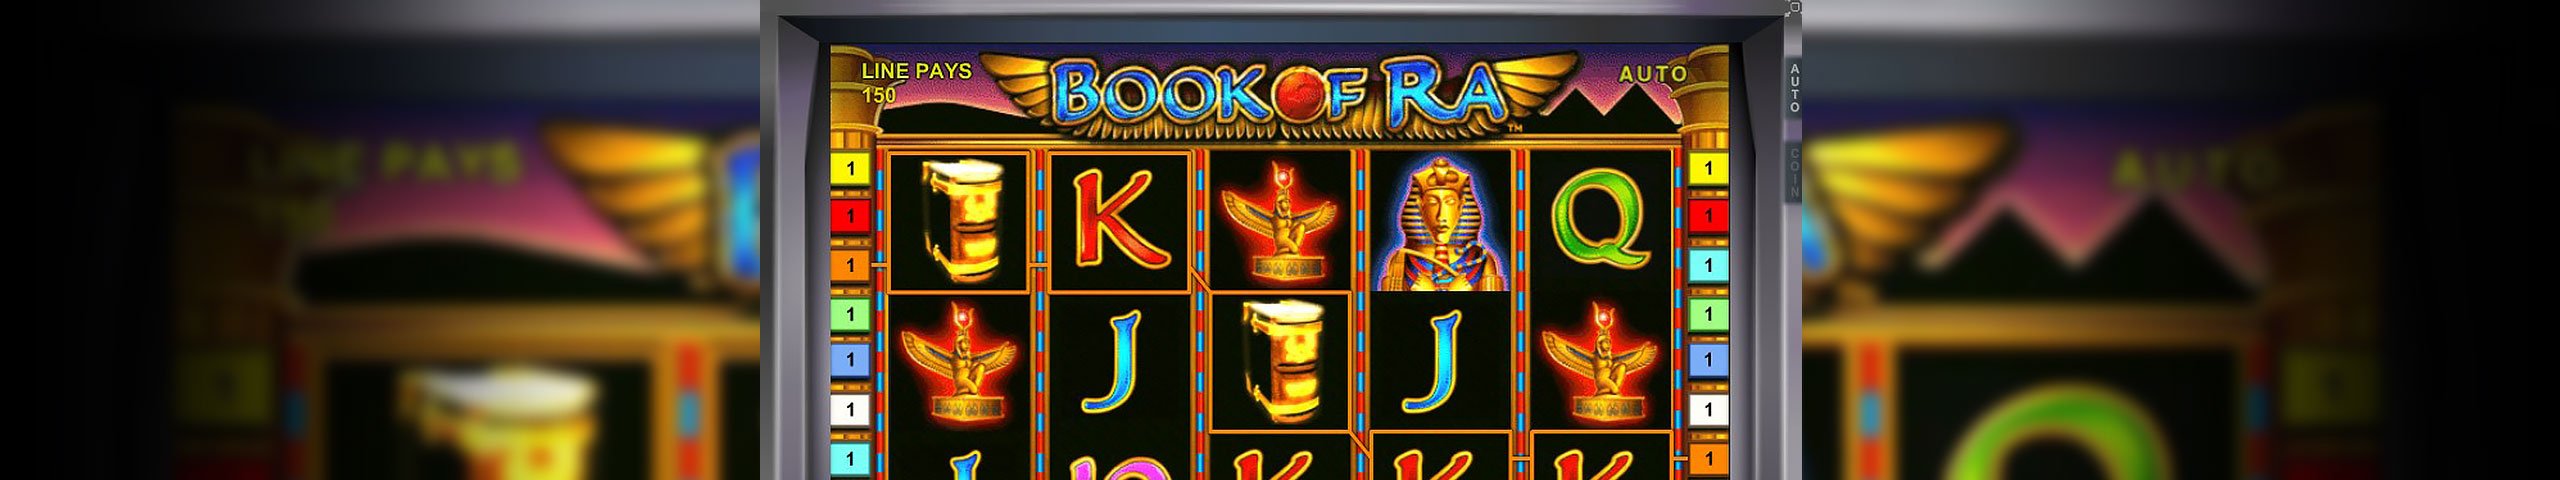 the book of ra game